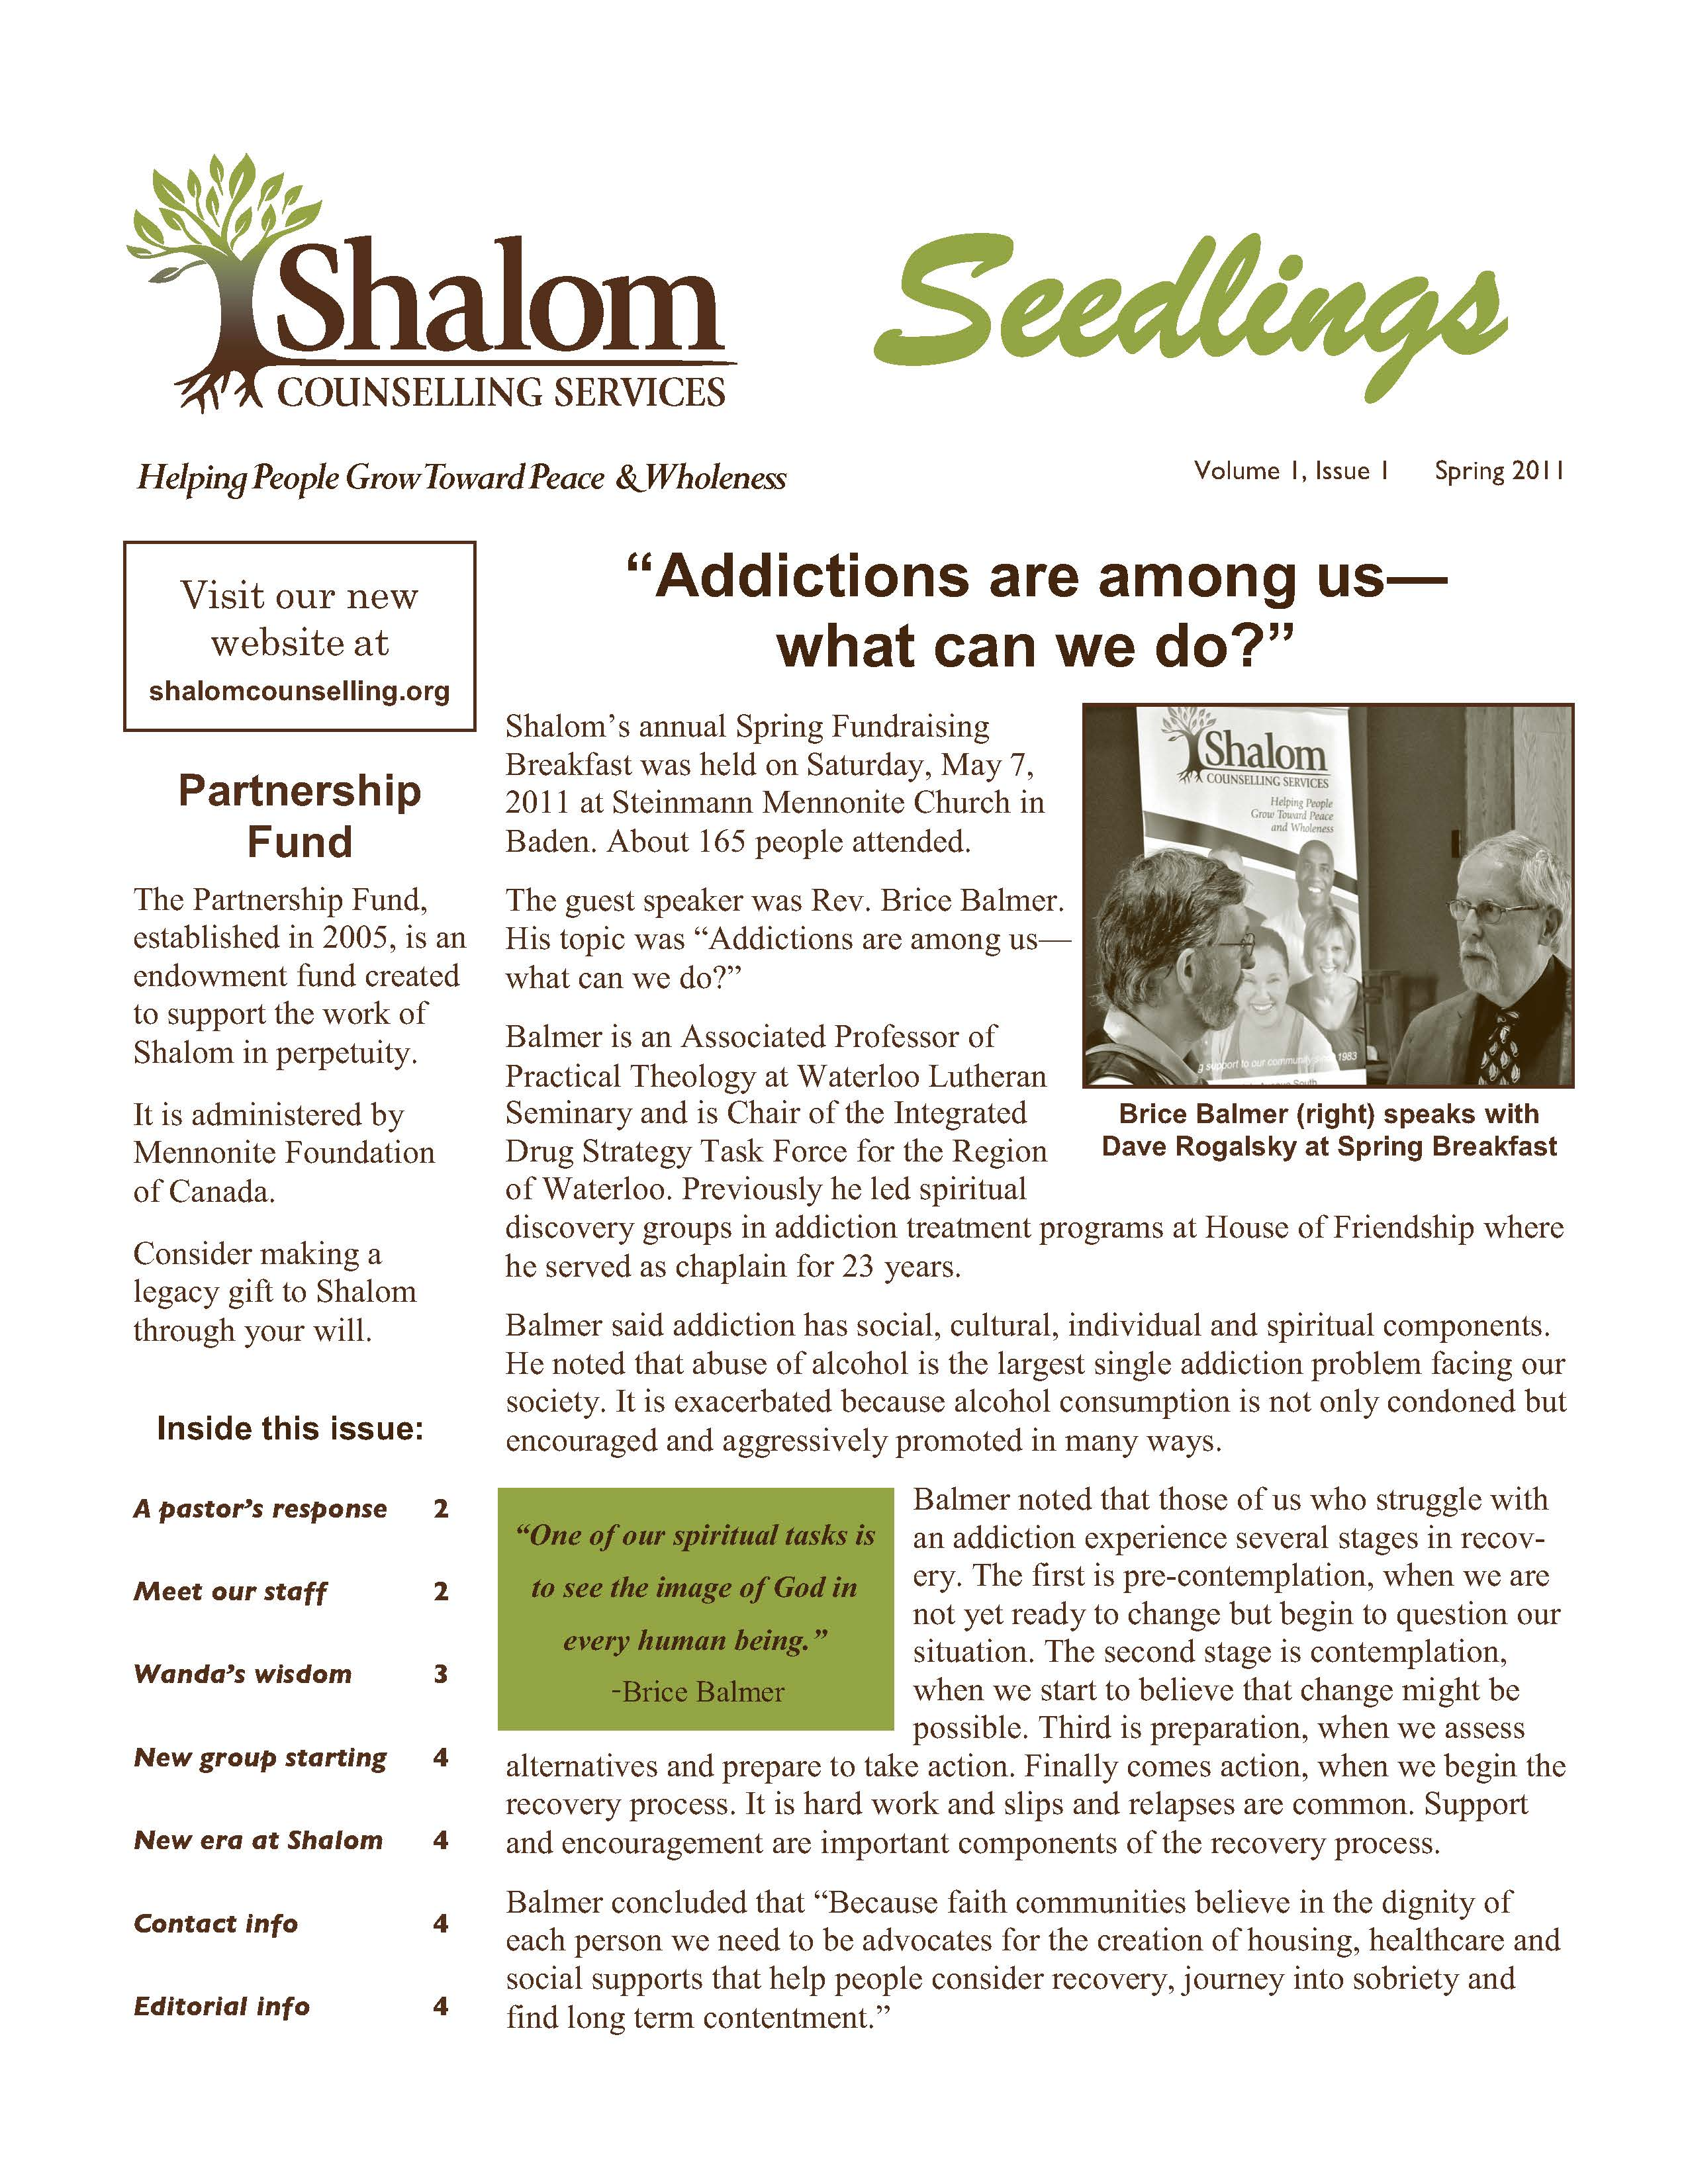 Spring 2011 Seedlings Newsletter